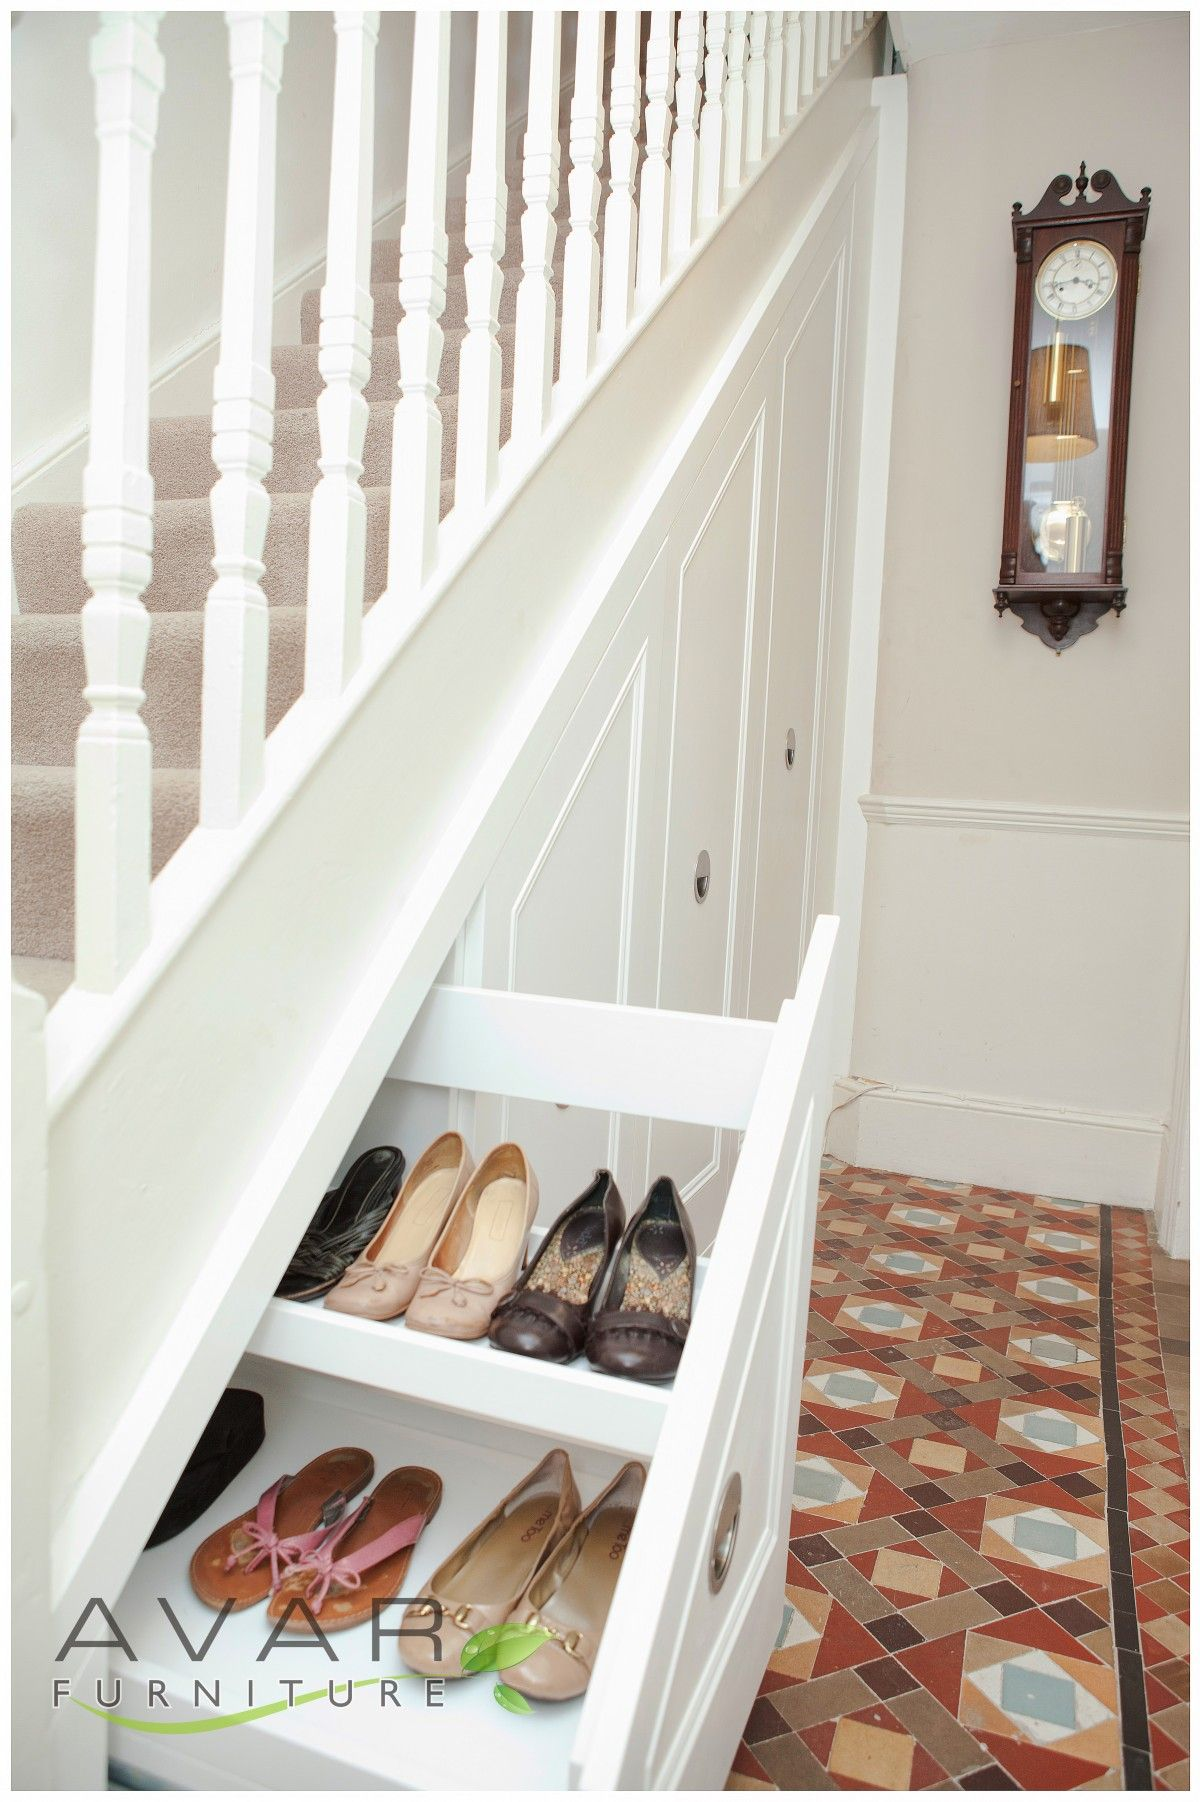 05 Pull out drawers under the stairs from Avar Furniture